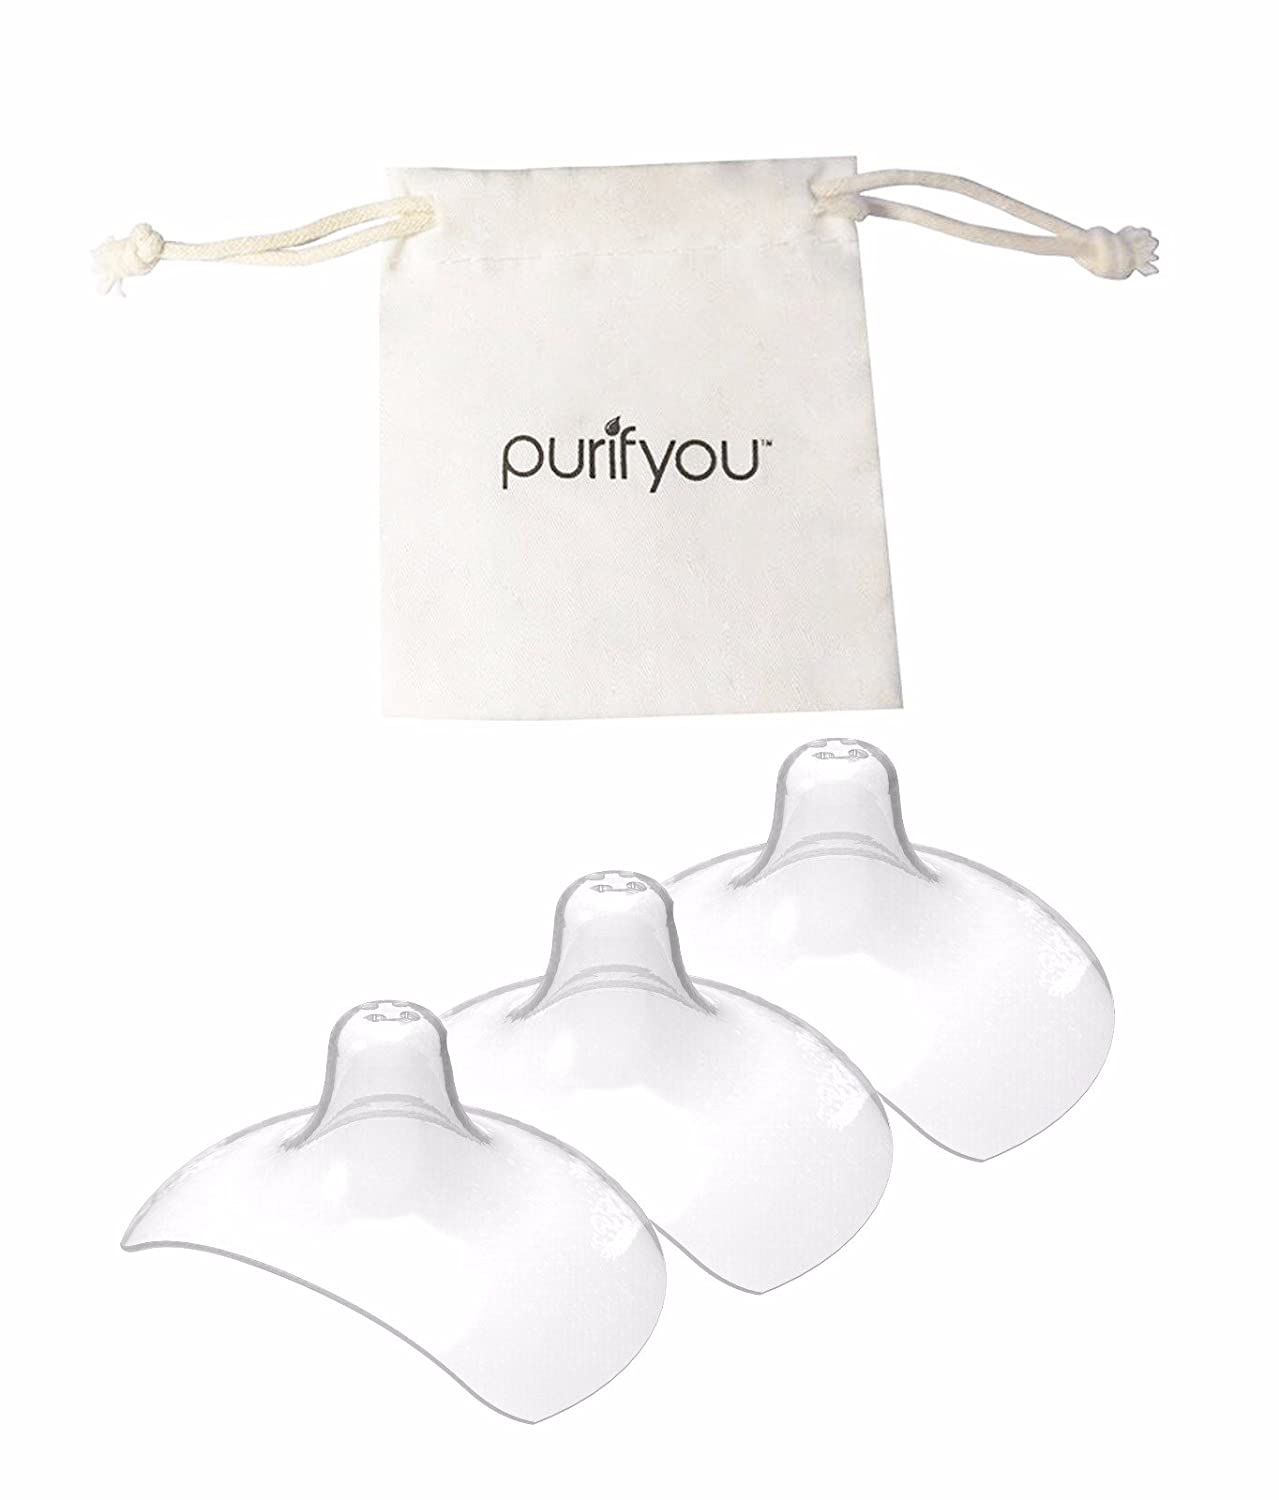 purifyou Premium Nipple Shield, 20mm / 24mm Set of 3 with Free Cotton Drawstring Bag